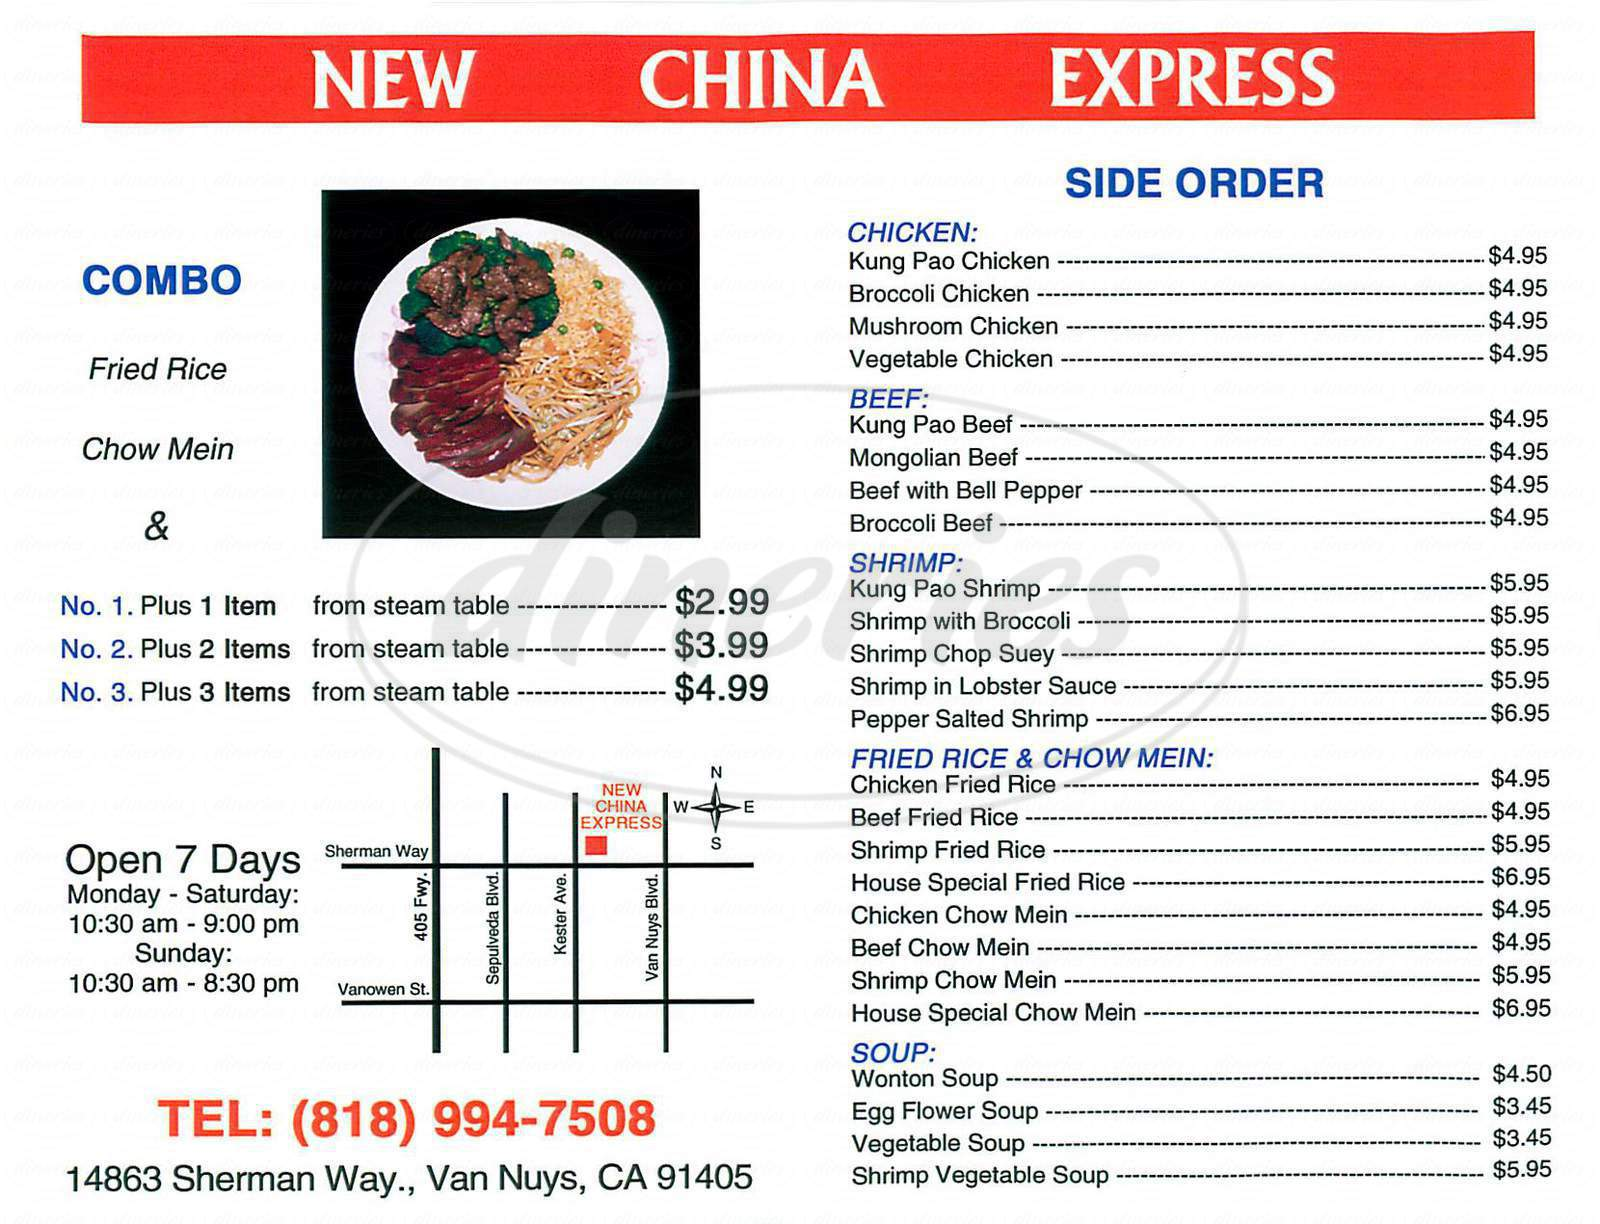 menu for New China Express